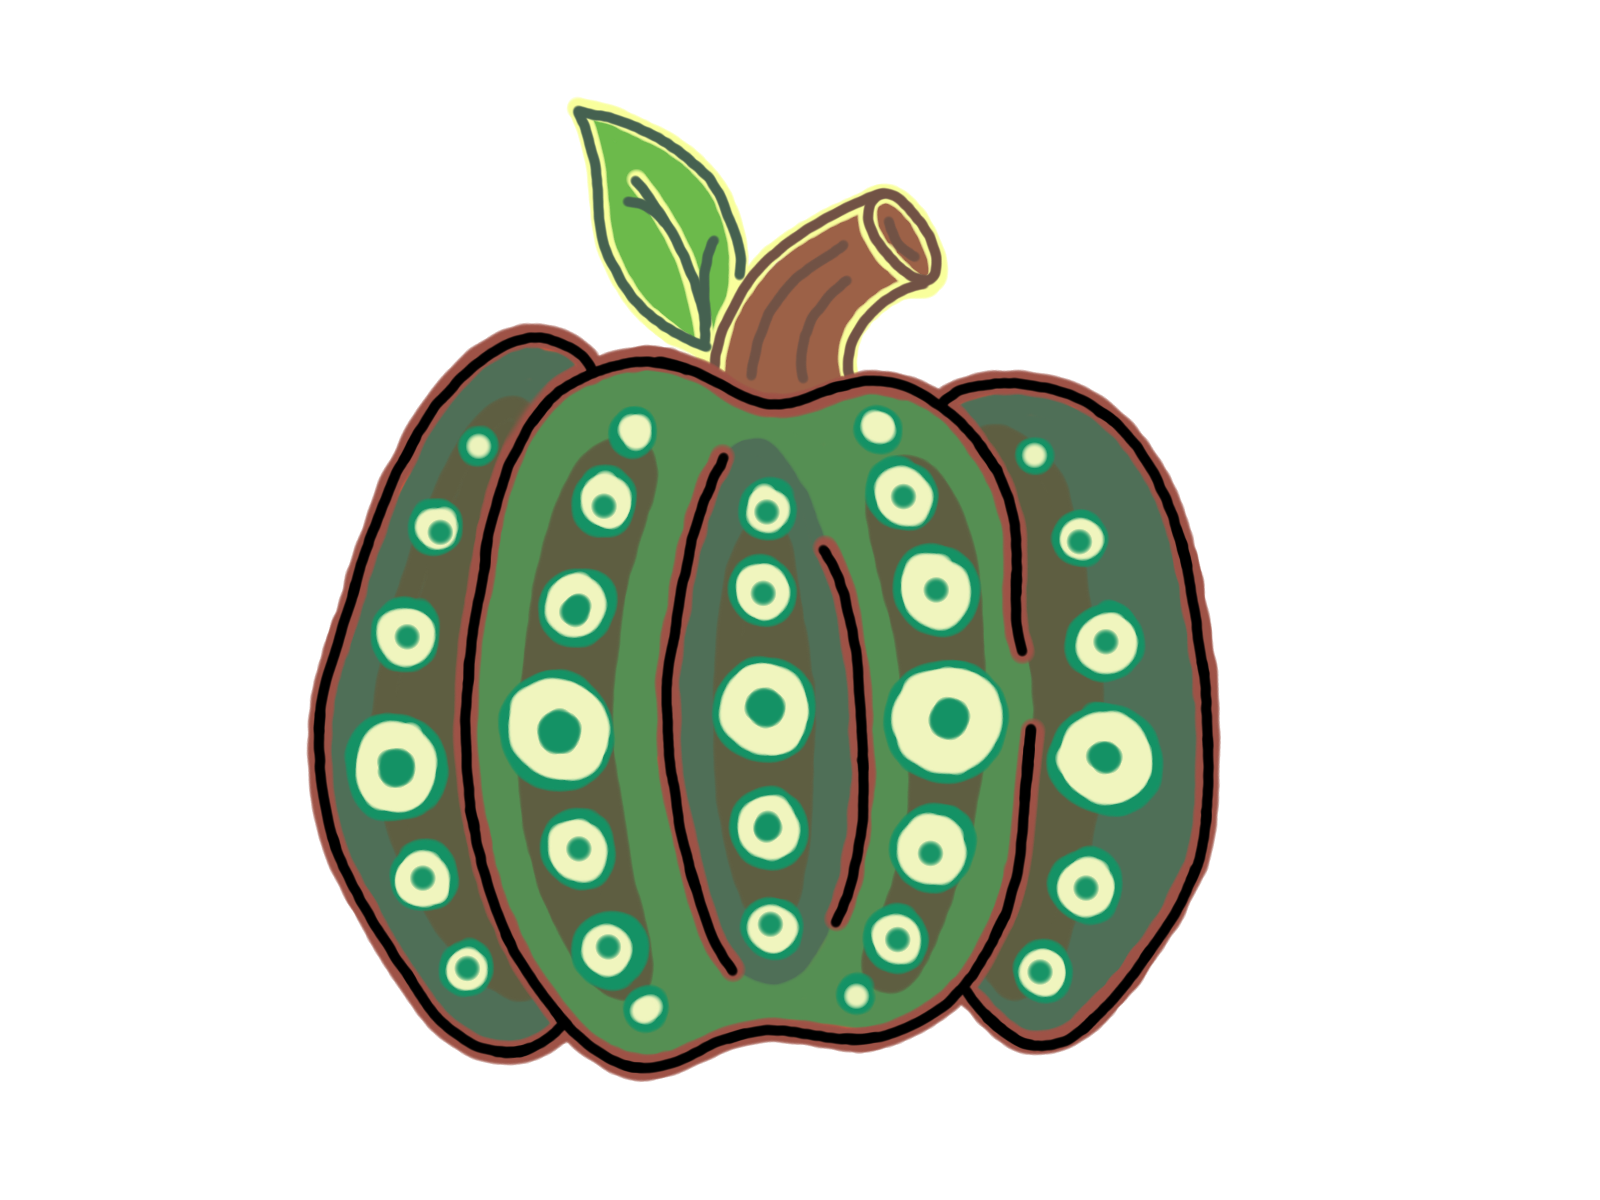 Apple cider clipart images clip art library download Apple cider Pumpkin Clip art - Green Pumpkin Cliparts 1600*1200 ... clip art library download